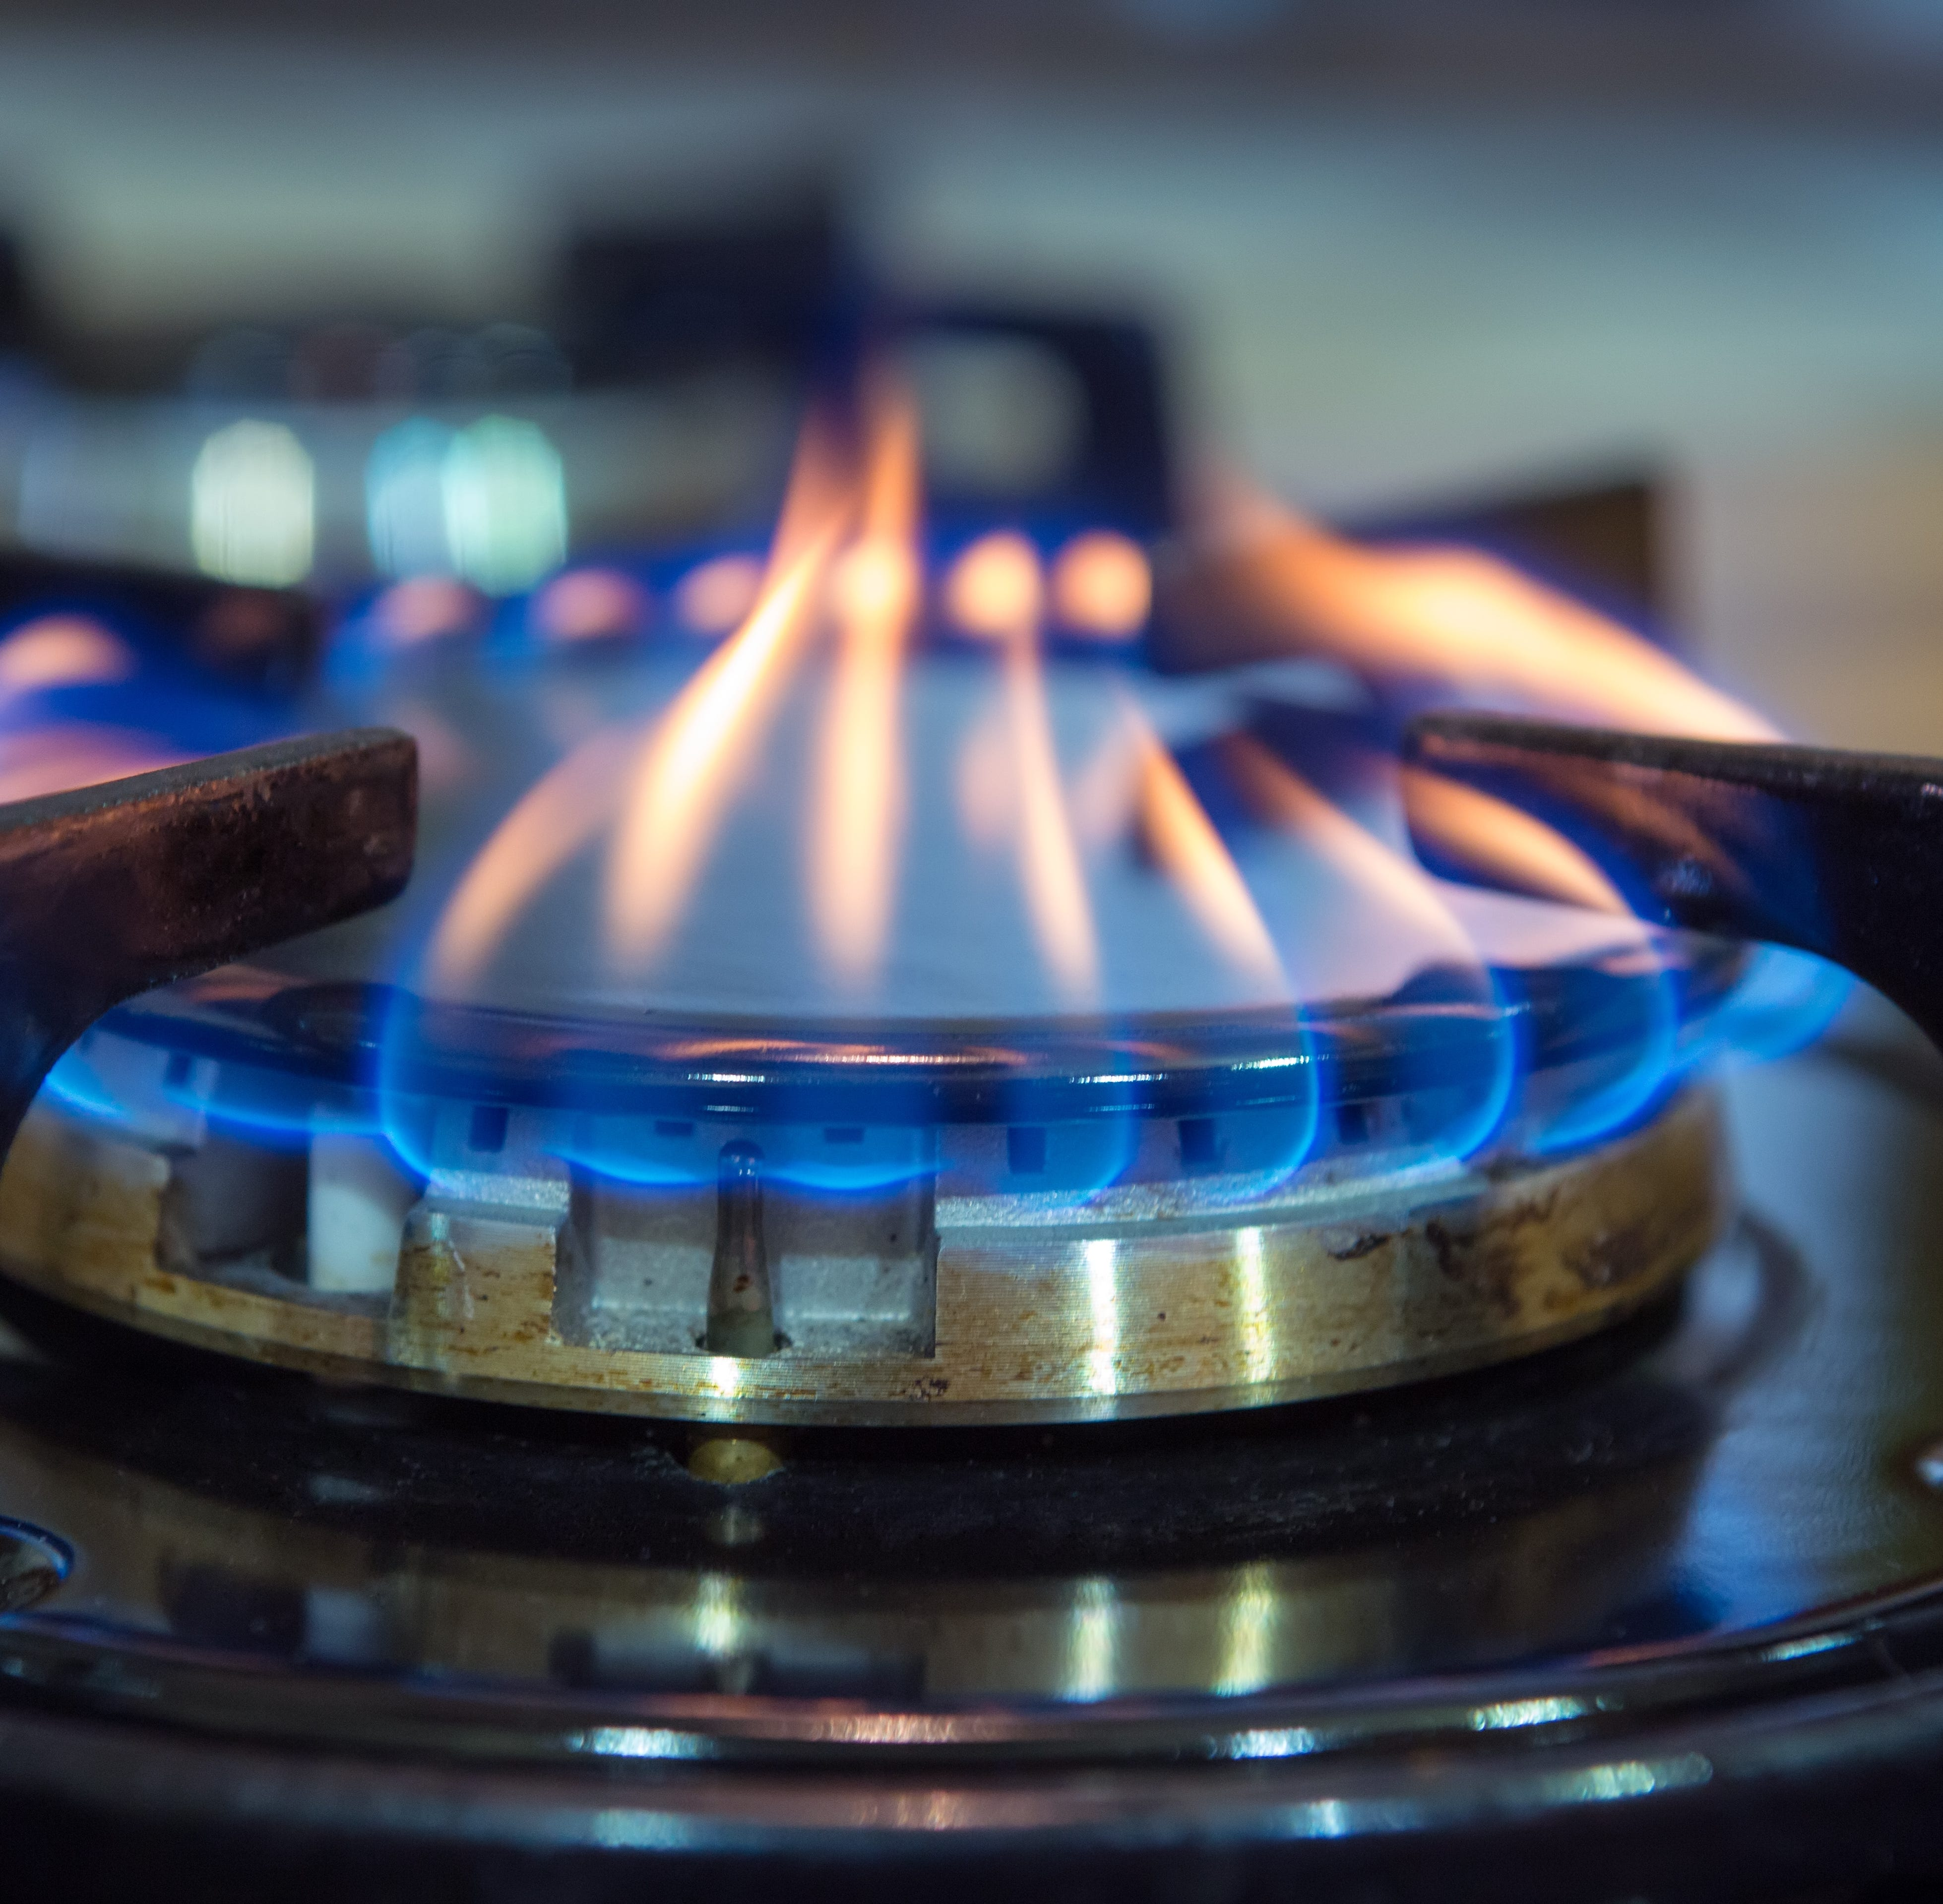 New Jersey Natural Gas wants to raise your rates 19 percent